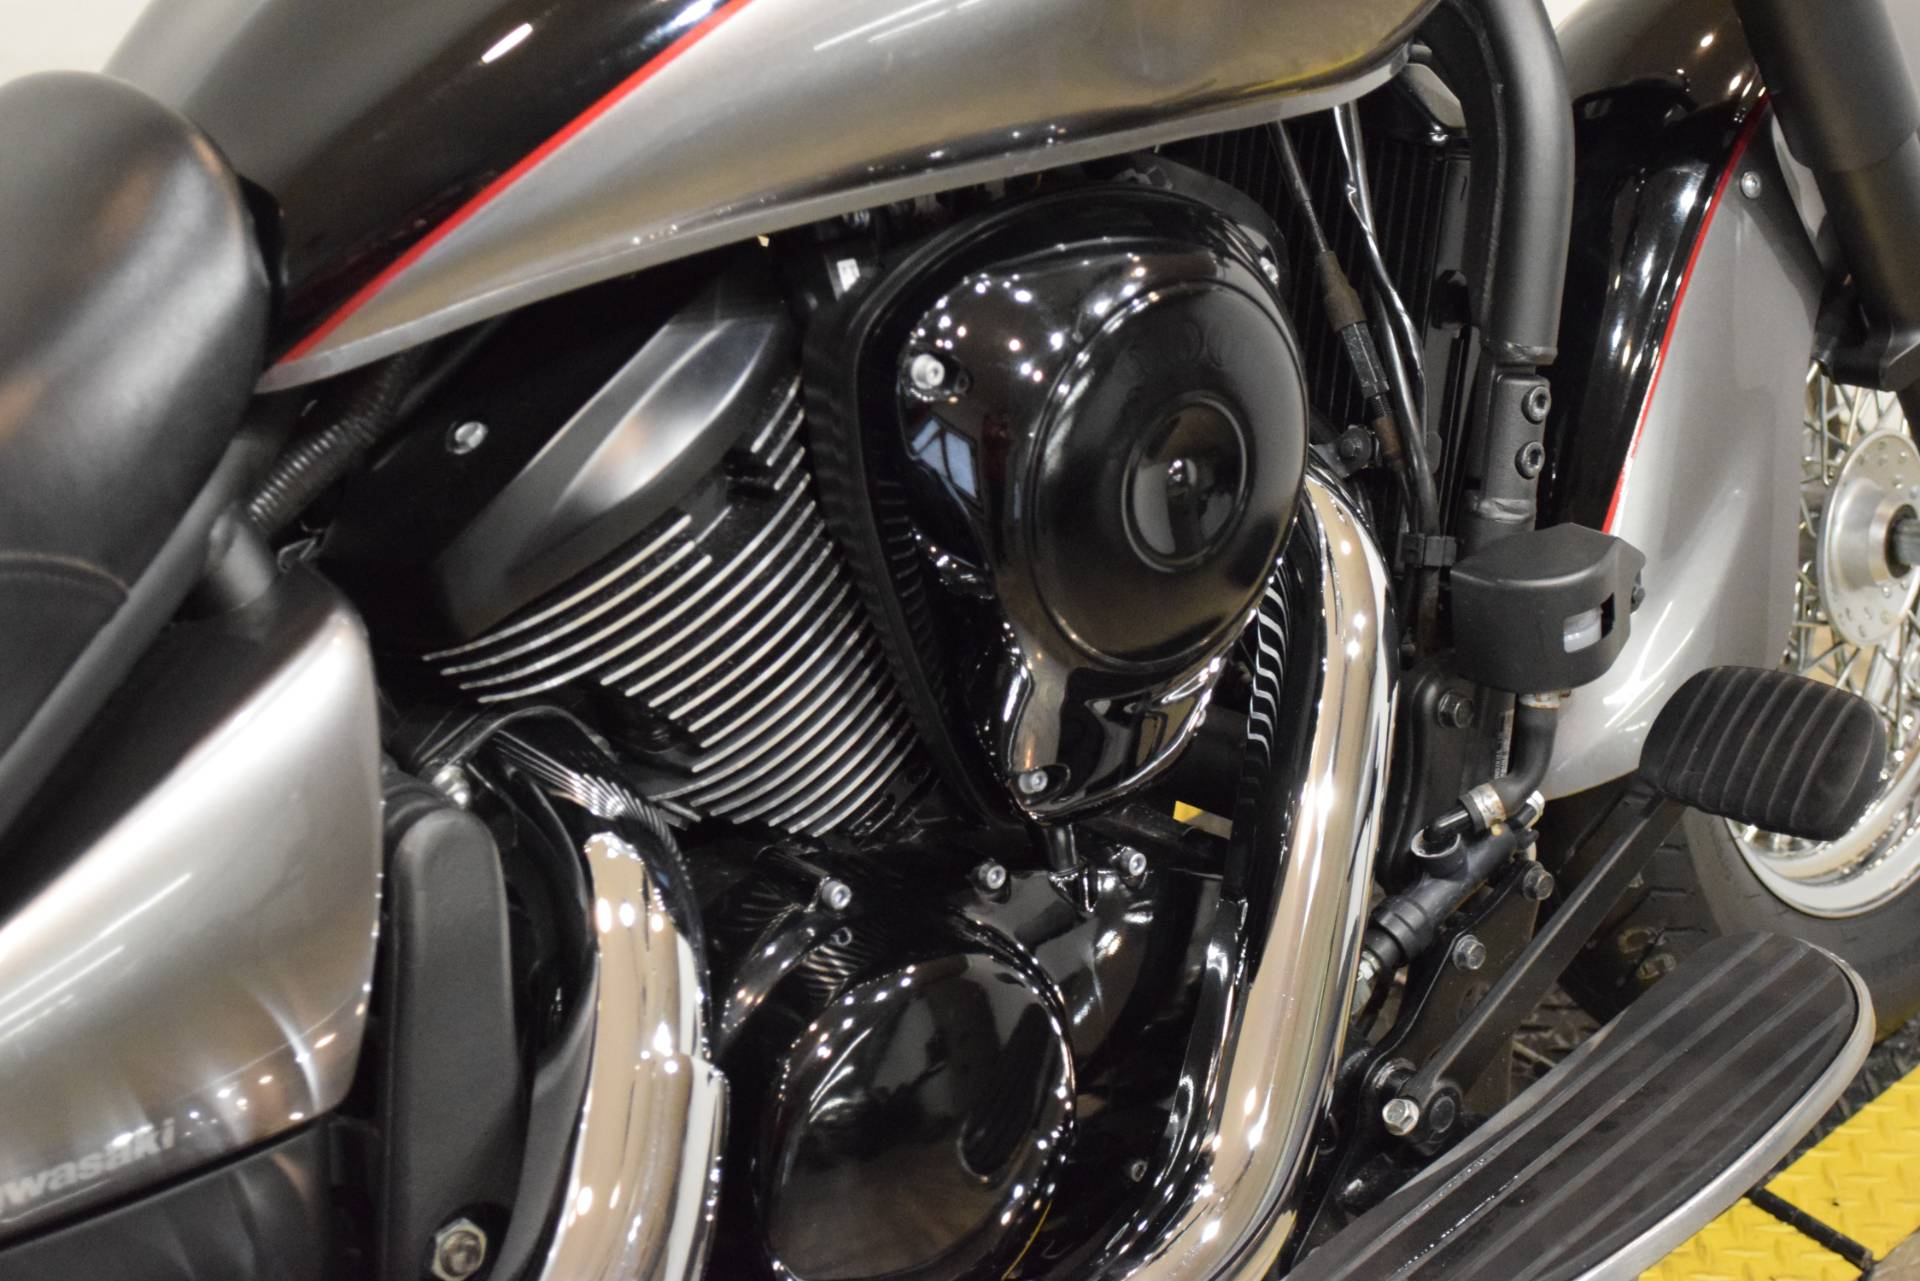 2014 Kawasaki Vulcan® 900 Classic in Wauconda, Illinois - Photo 7